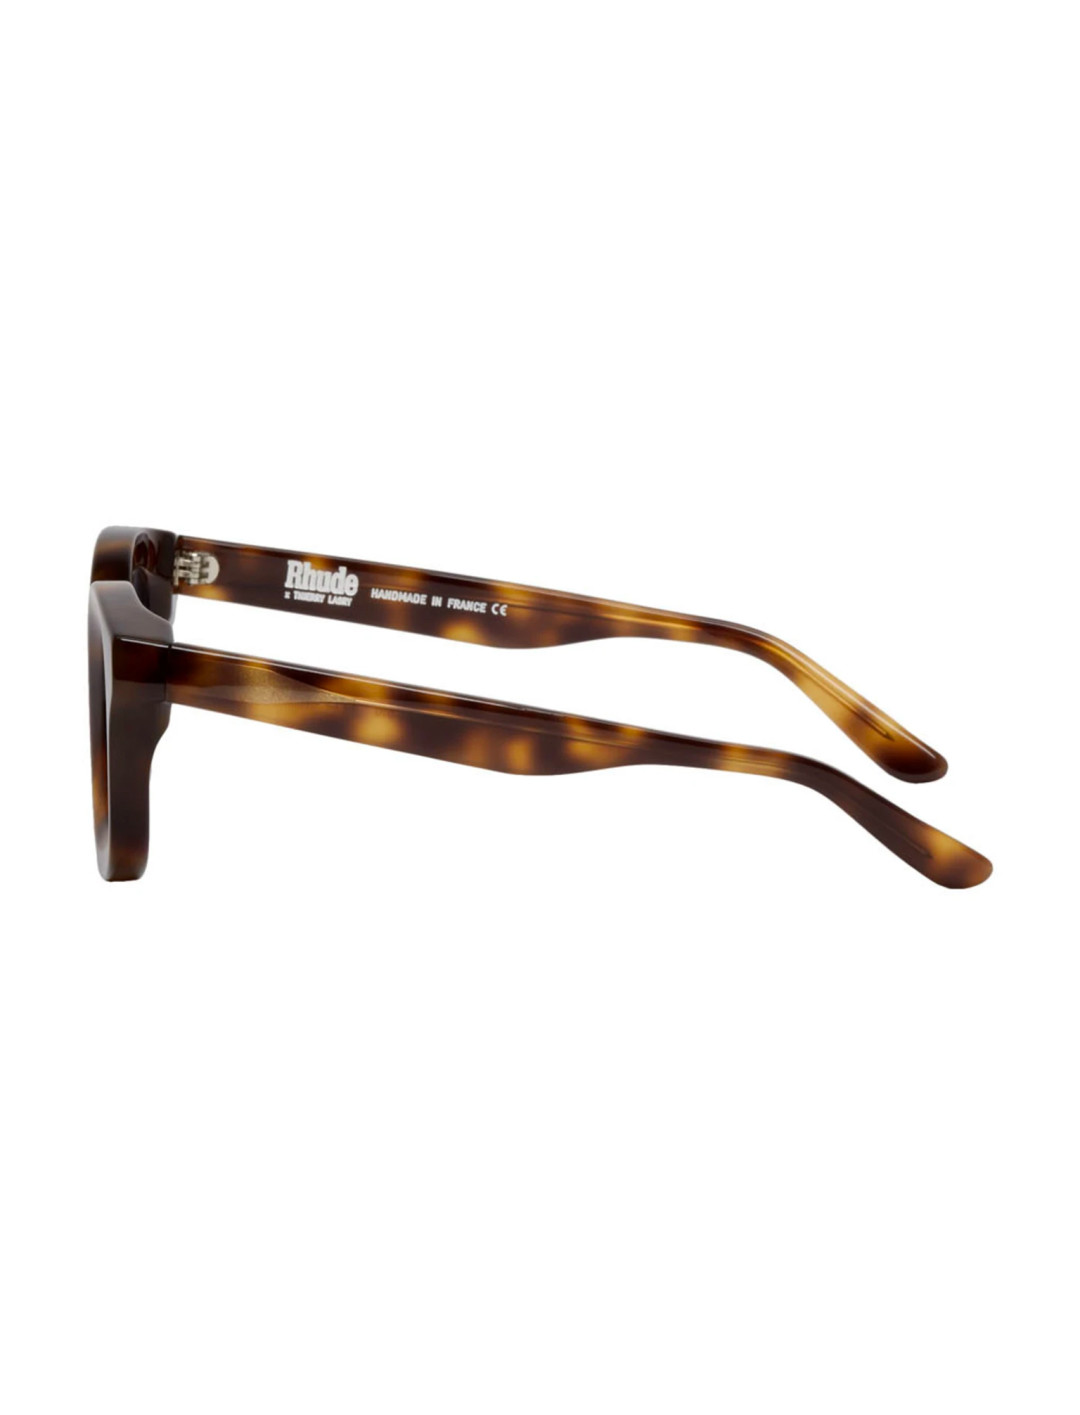 Rhodeo Sunglasses